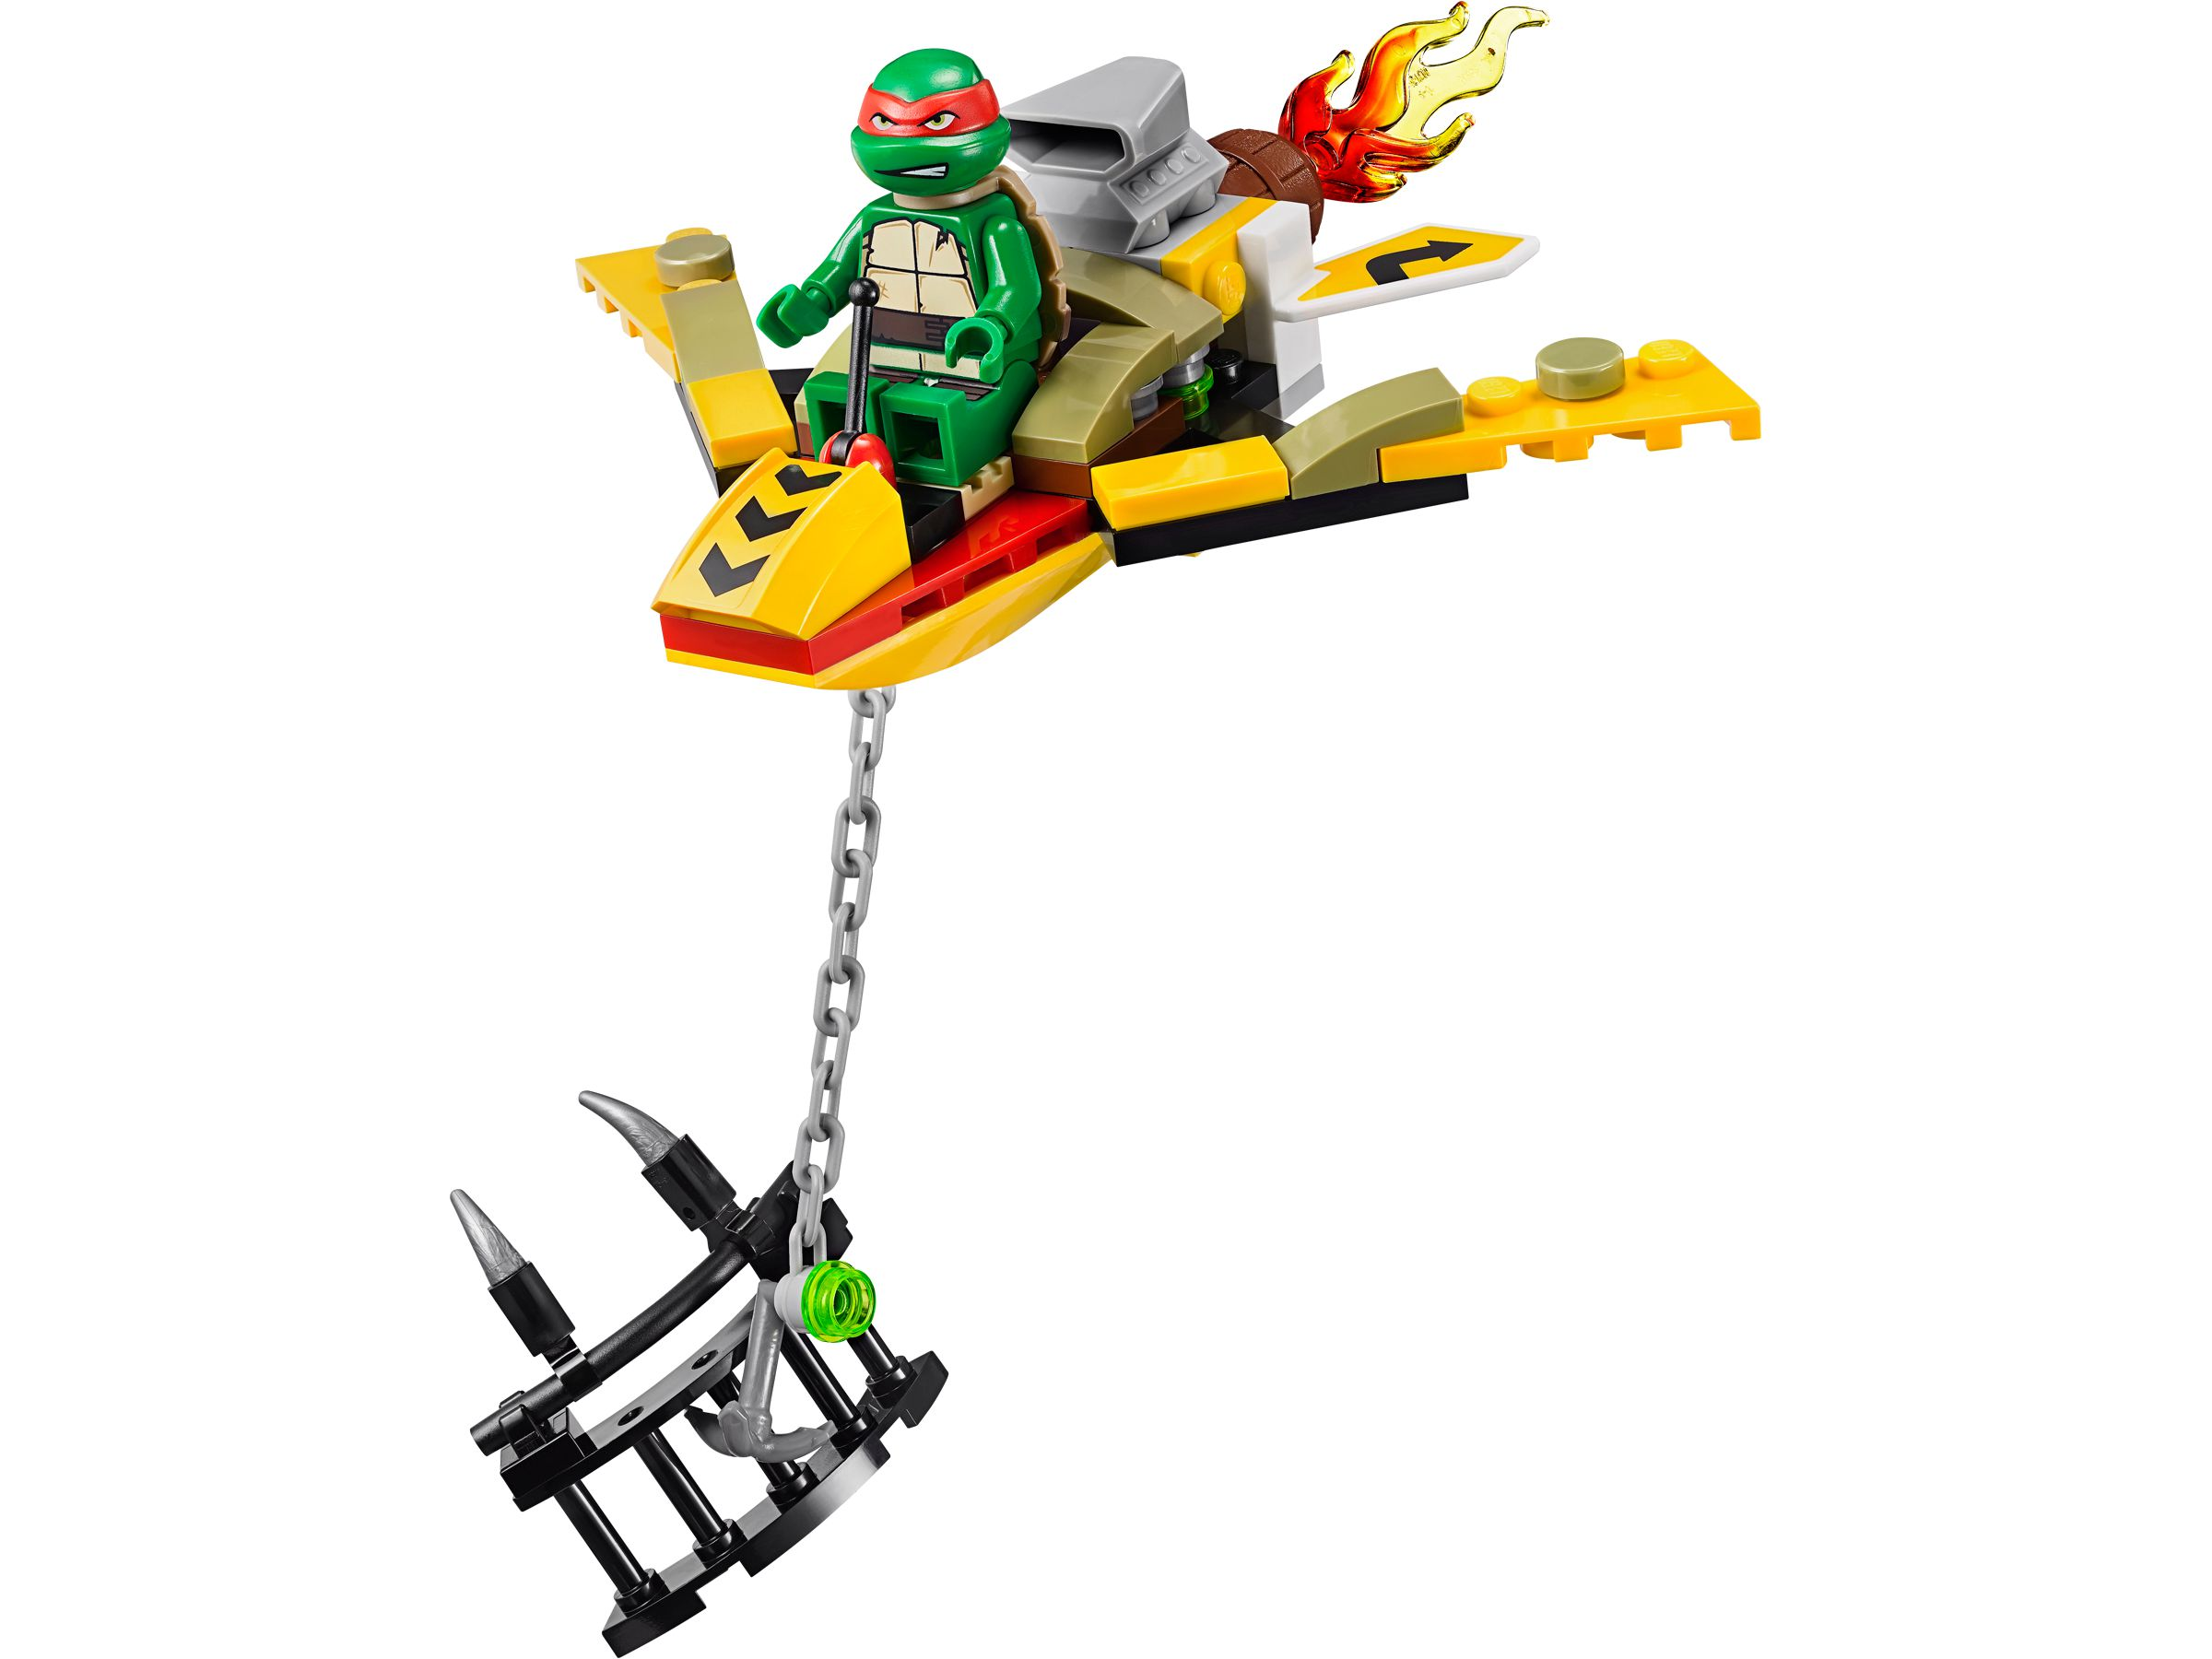 LEGO Teenage Mutant Ninja Turtles 79122 Rettung aus Shredders Versteck LEGO_79122_alt8.jpg